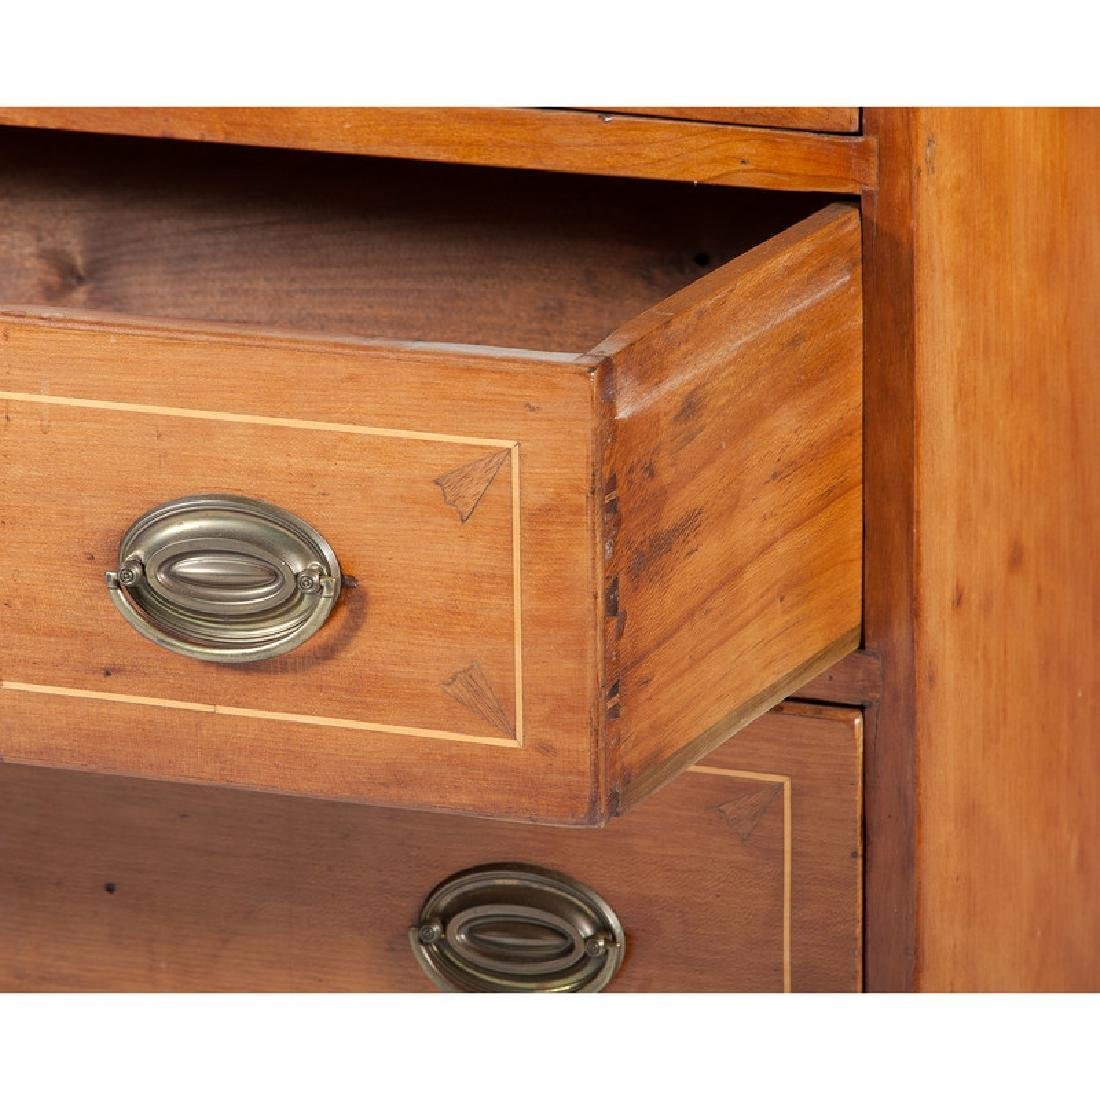 Federal Inlaid Chest of Drawers - 2